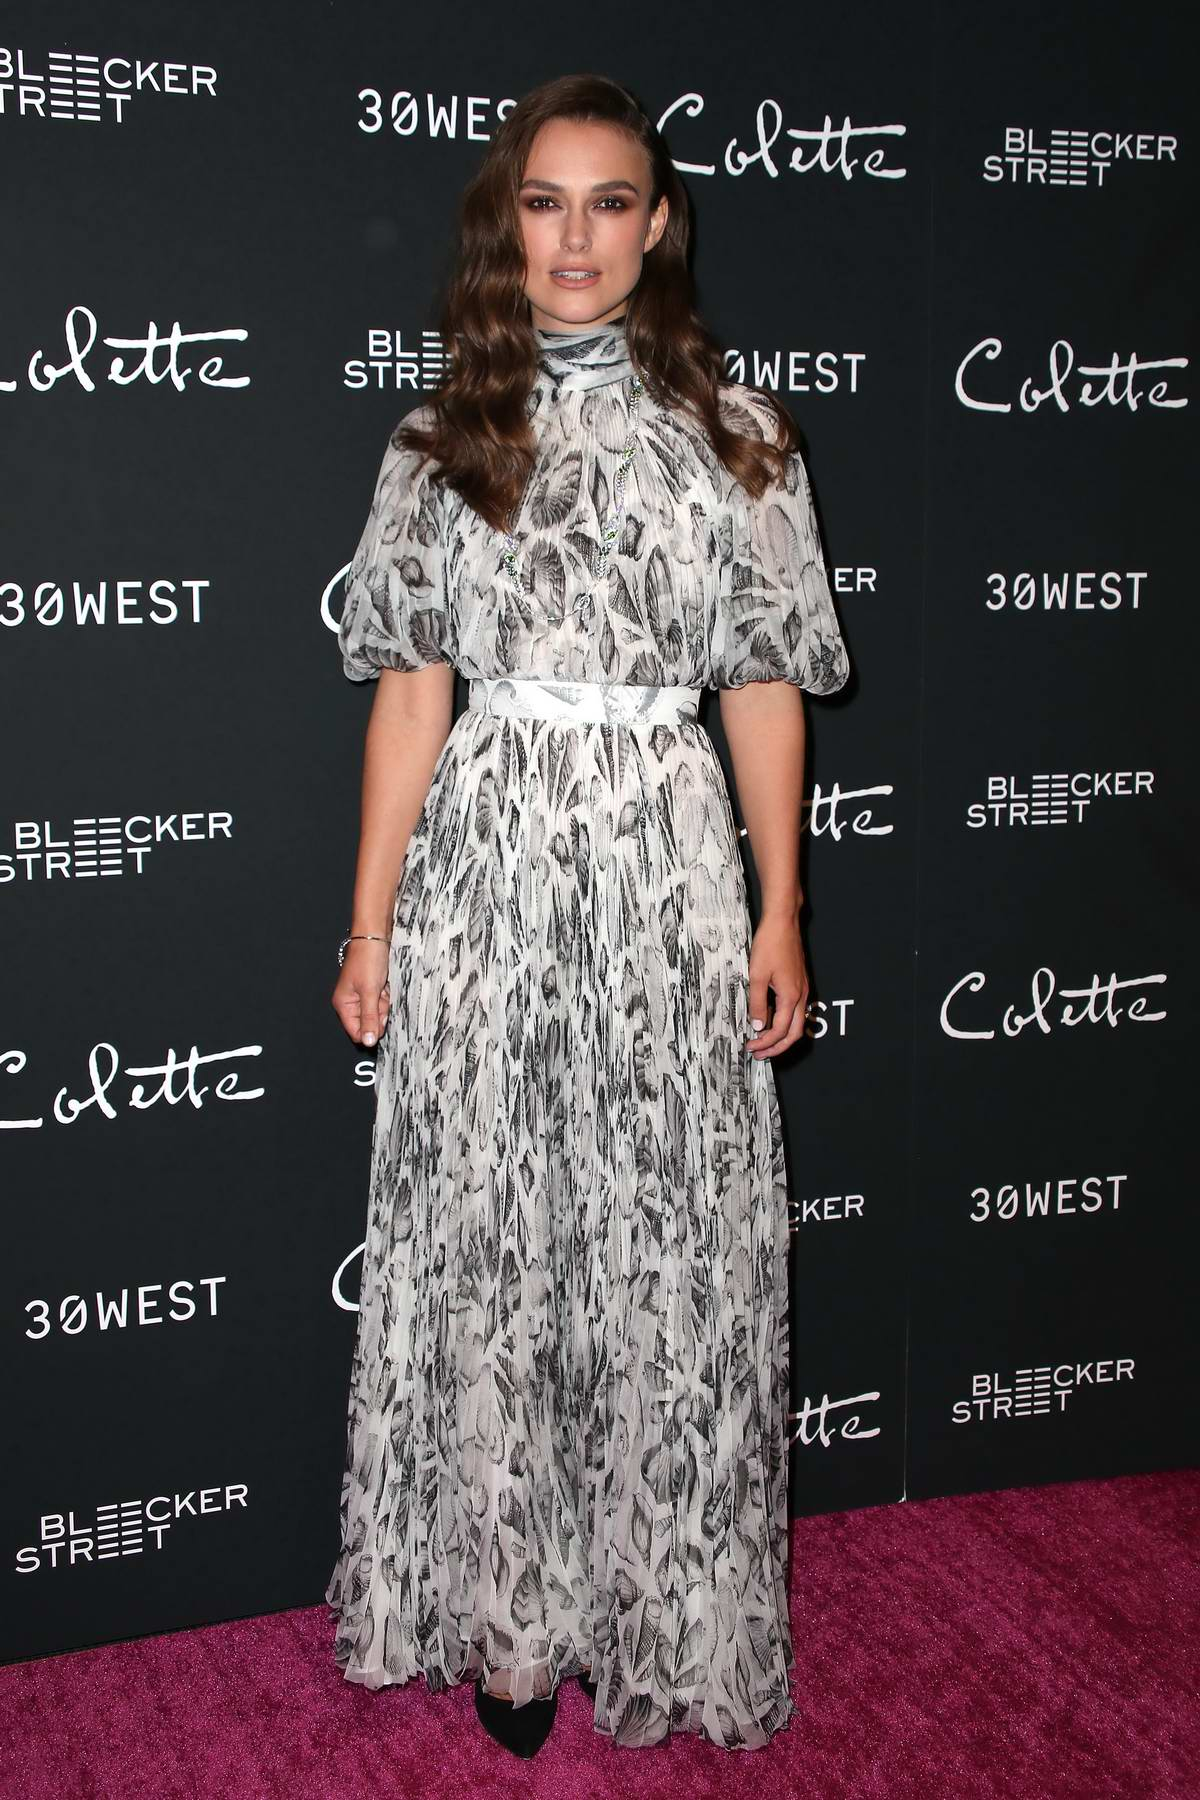 Keira Knightley attends special screening of 'Colette' in New York City